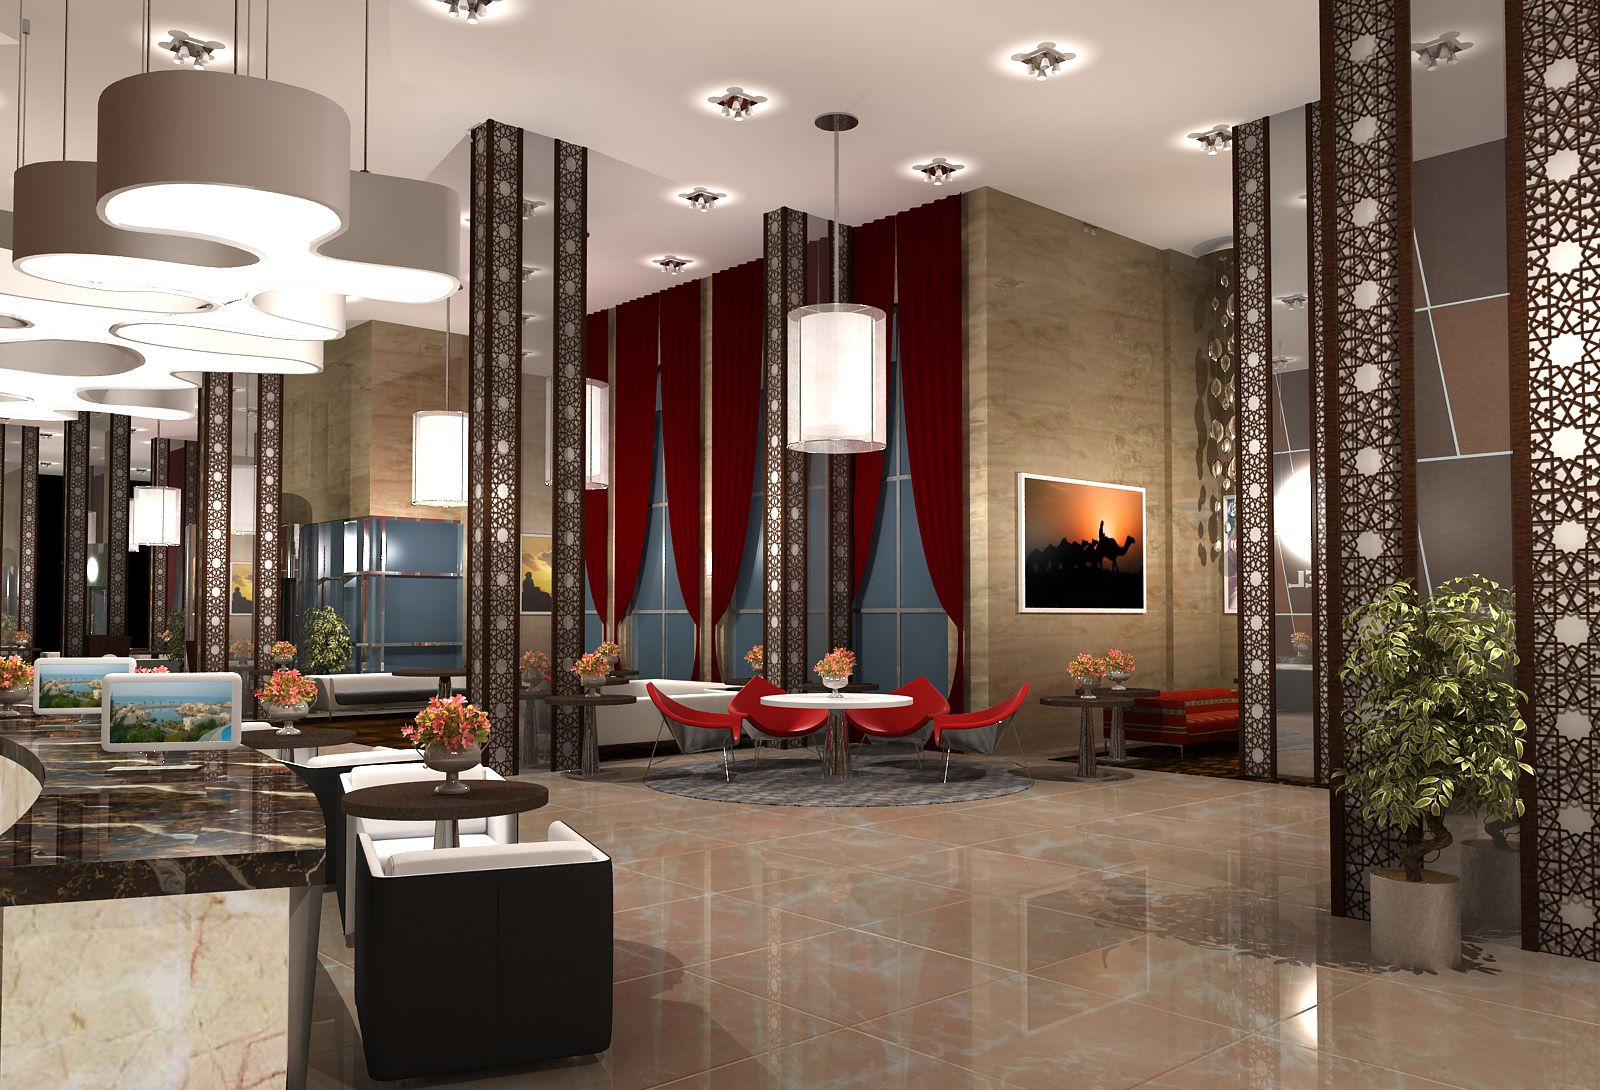 6 ways hotel lobbies teach us about interior design beautiful hotel lobby amipublicfo Images